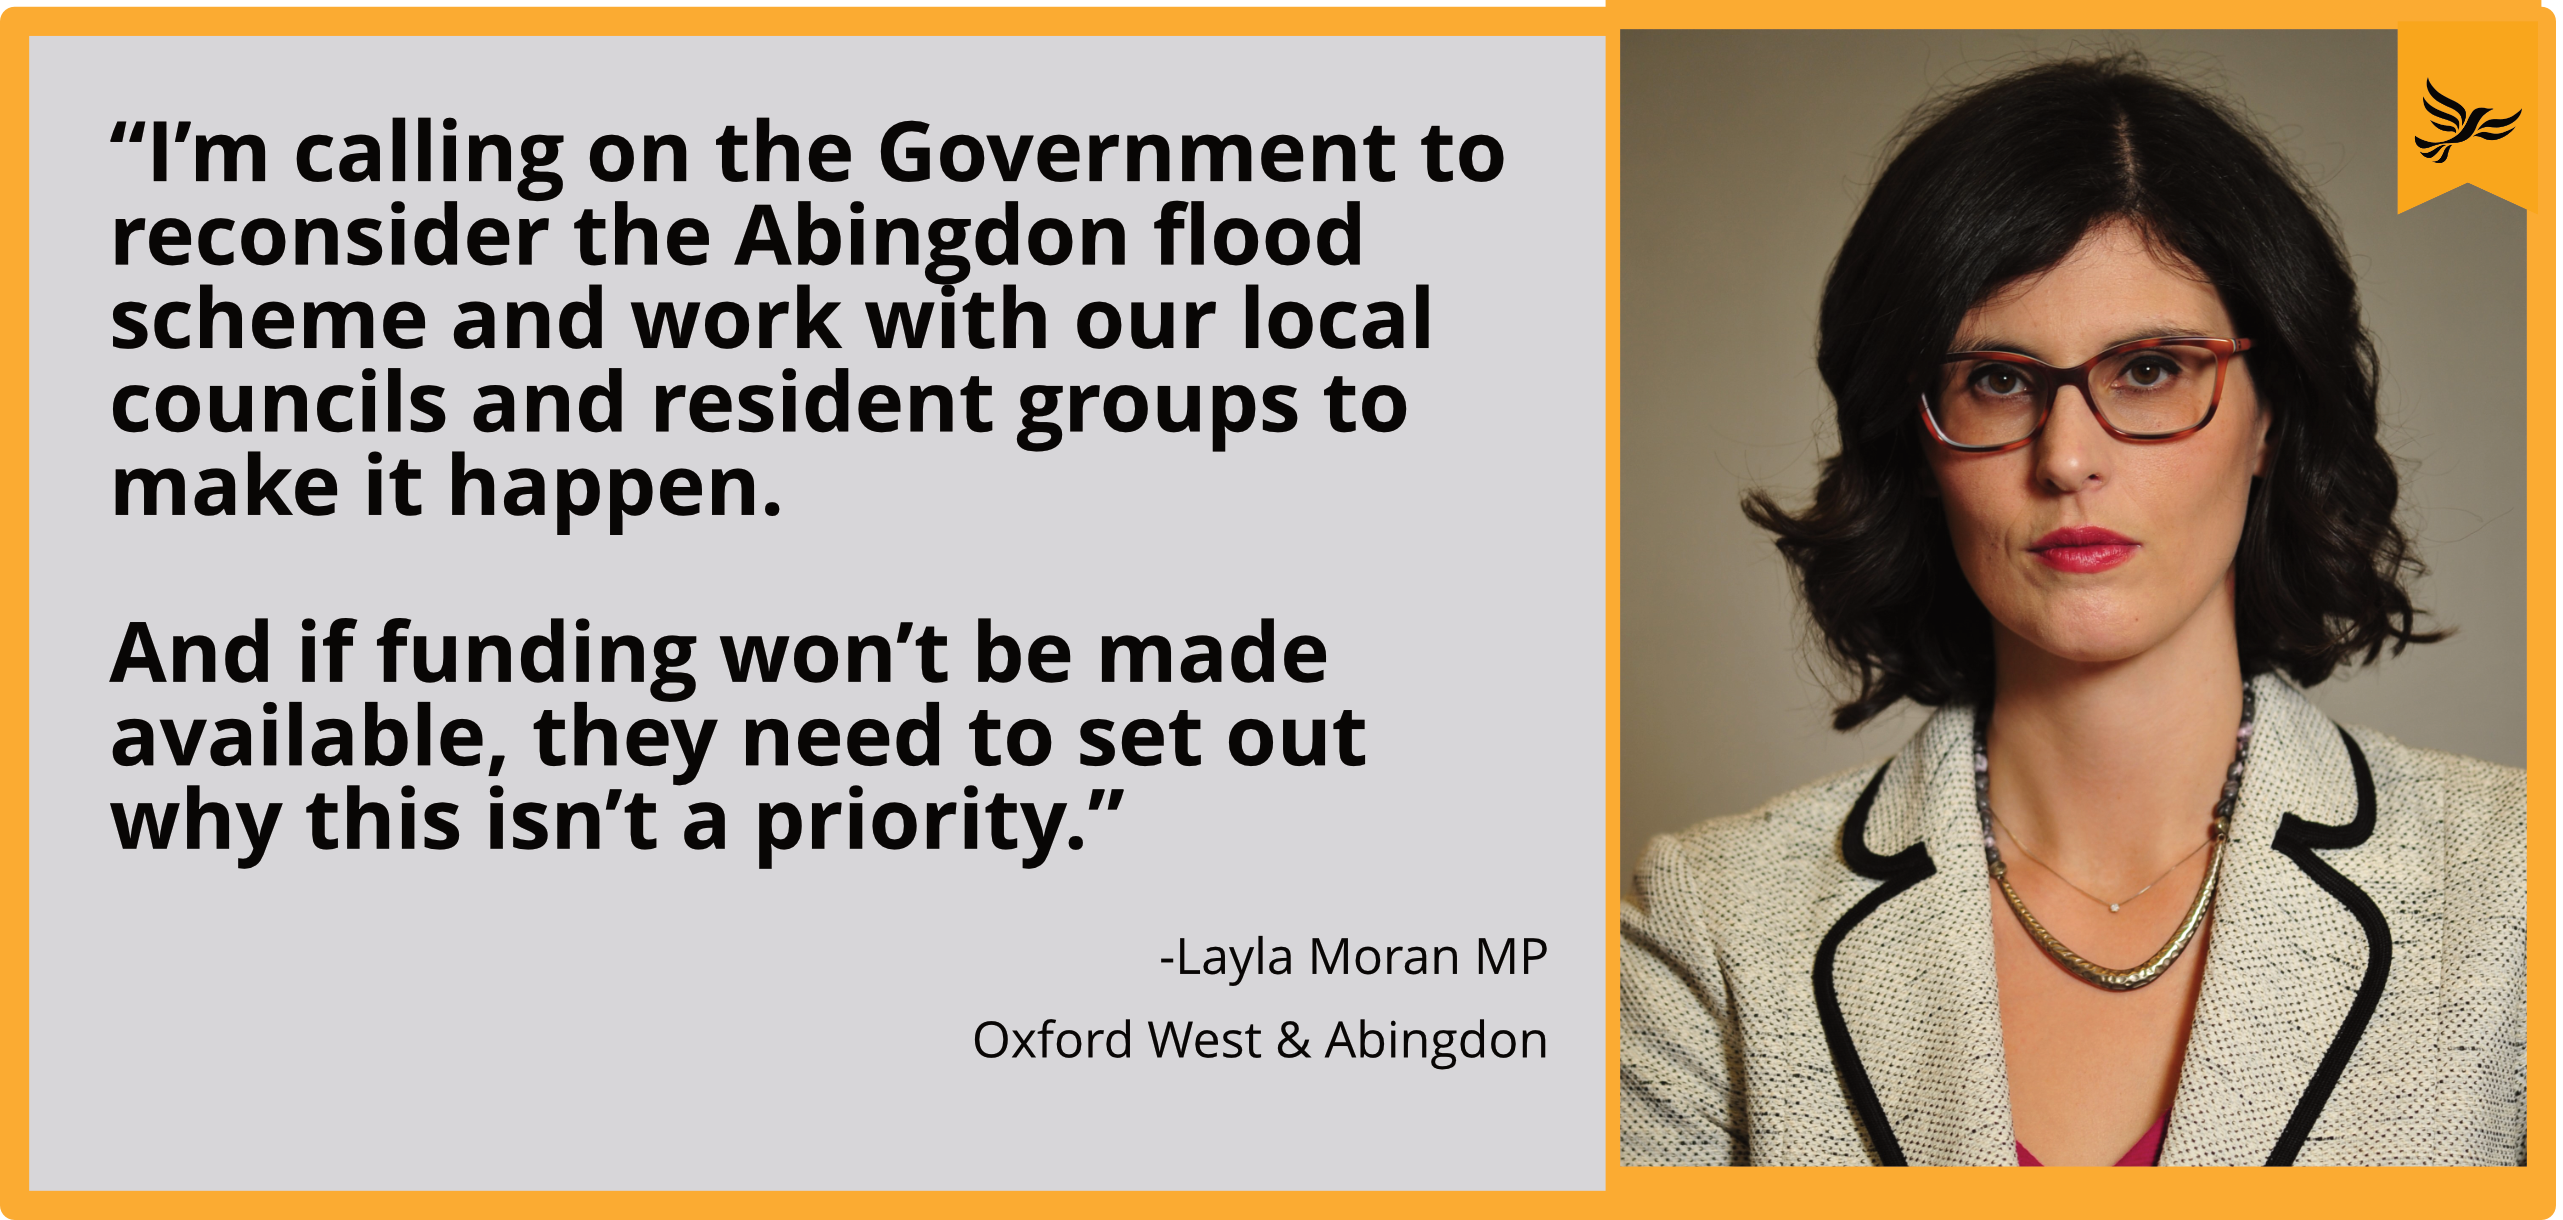 I'm calling on the Government to reconsider the Abingdon flood scheme and work with our local councils and resident groups to make it happen. And if funding won't be made available, they need to set out why this isn't a priority.""